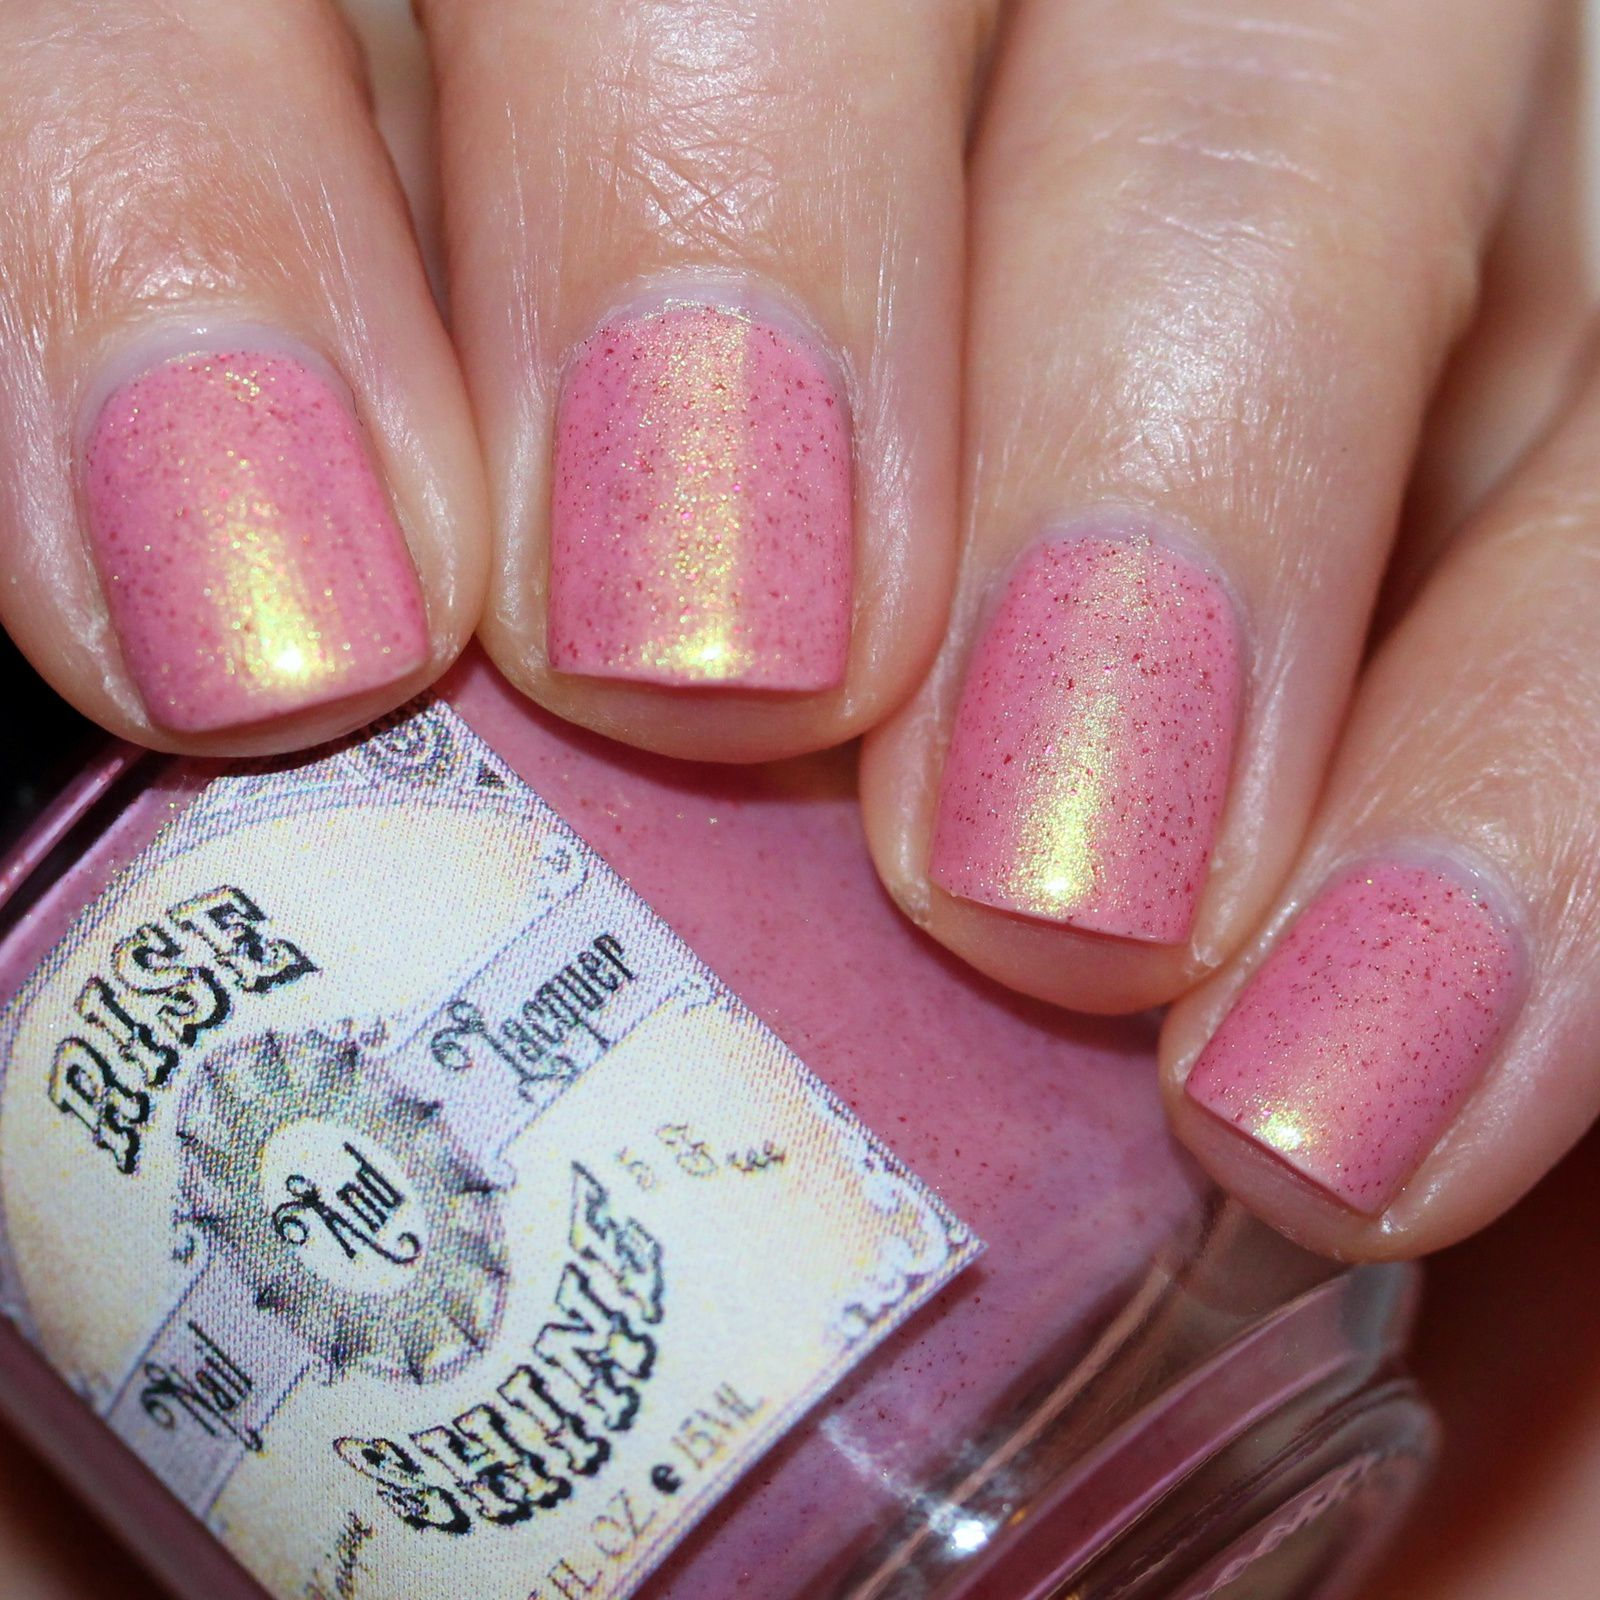 Sally Hansen Complete Care 4-in-1 Extra Moisturizing Nail Treatment /  Rise & Shine Nail Lacquer Hello From The Other Side / Poshe Top Coat